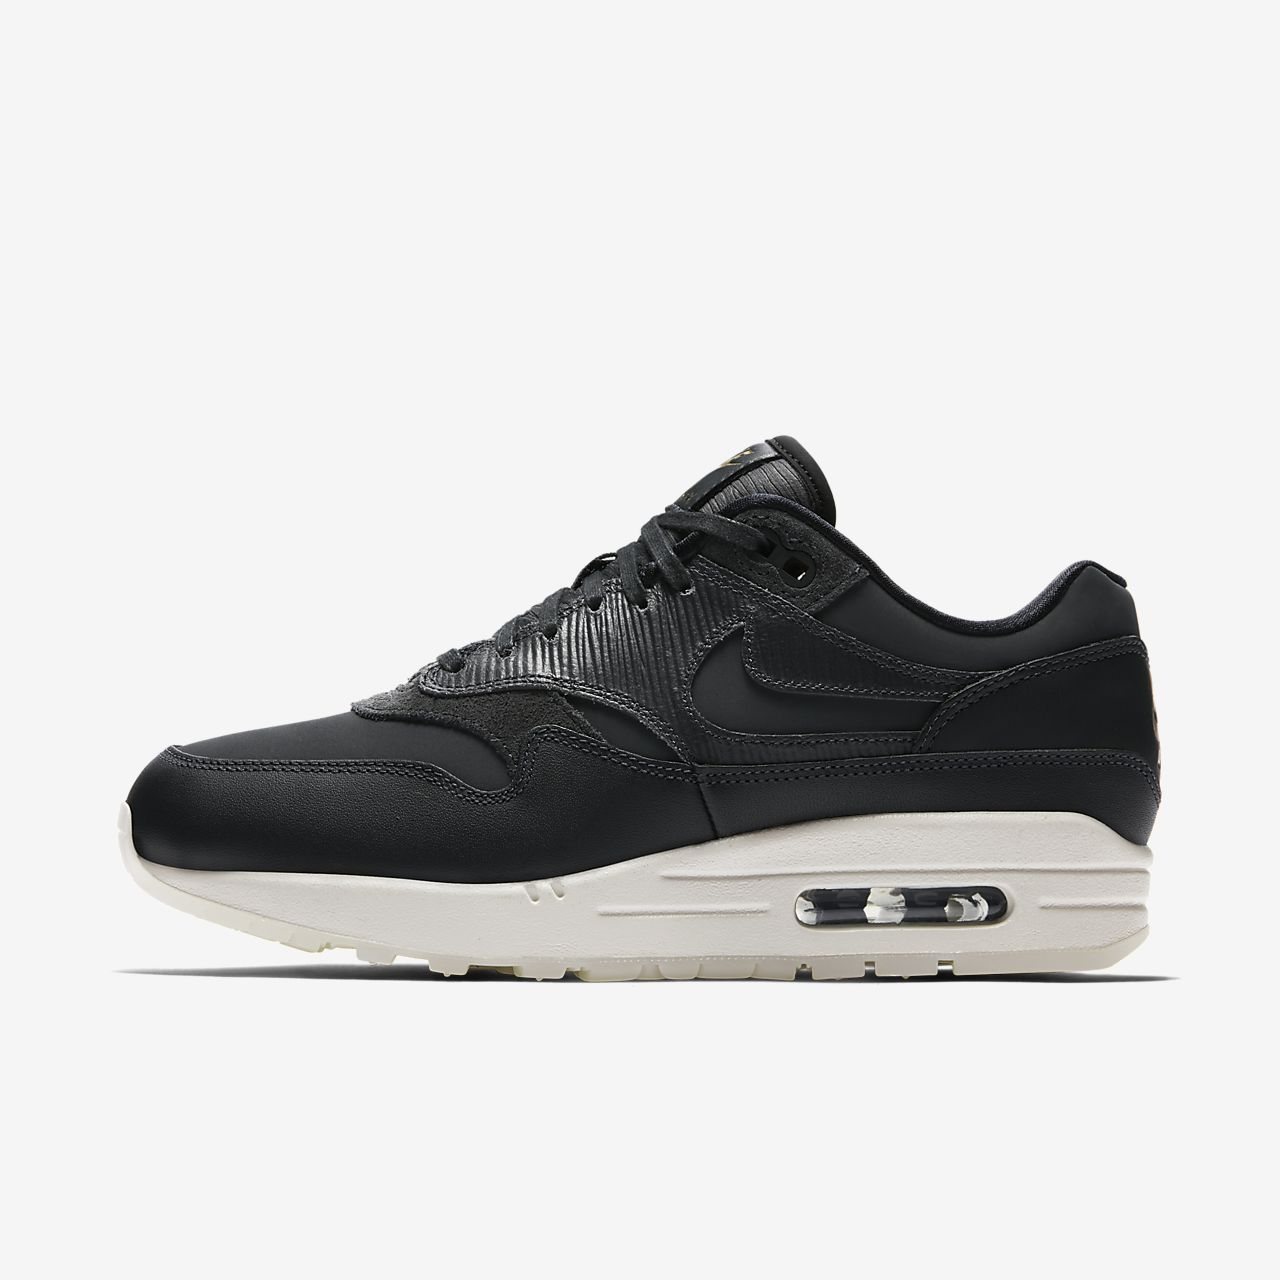 Nike Air Max 1 Premium Sneakers Anthracite Size 6 7 8 9 Womens Shoes New